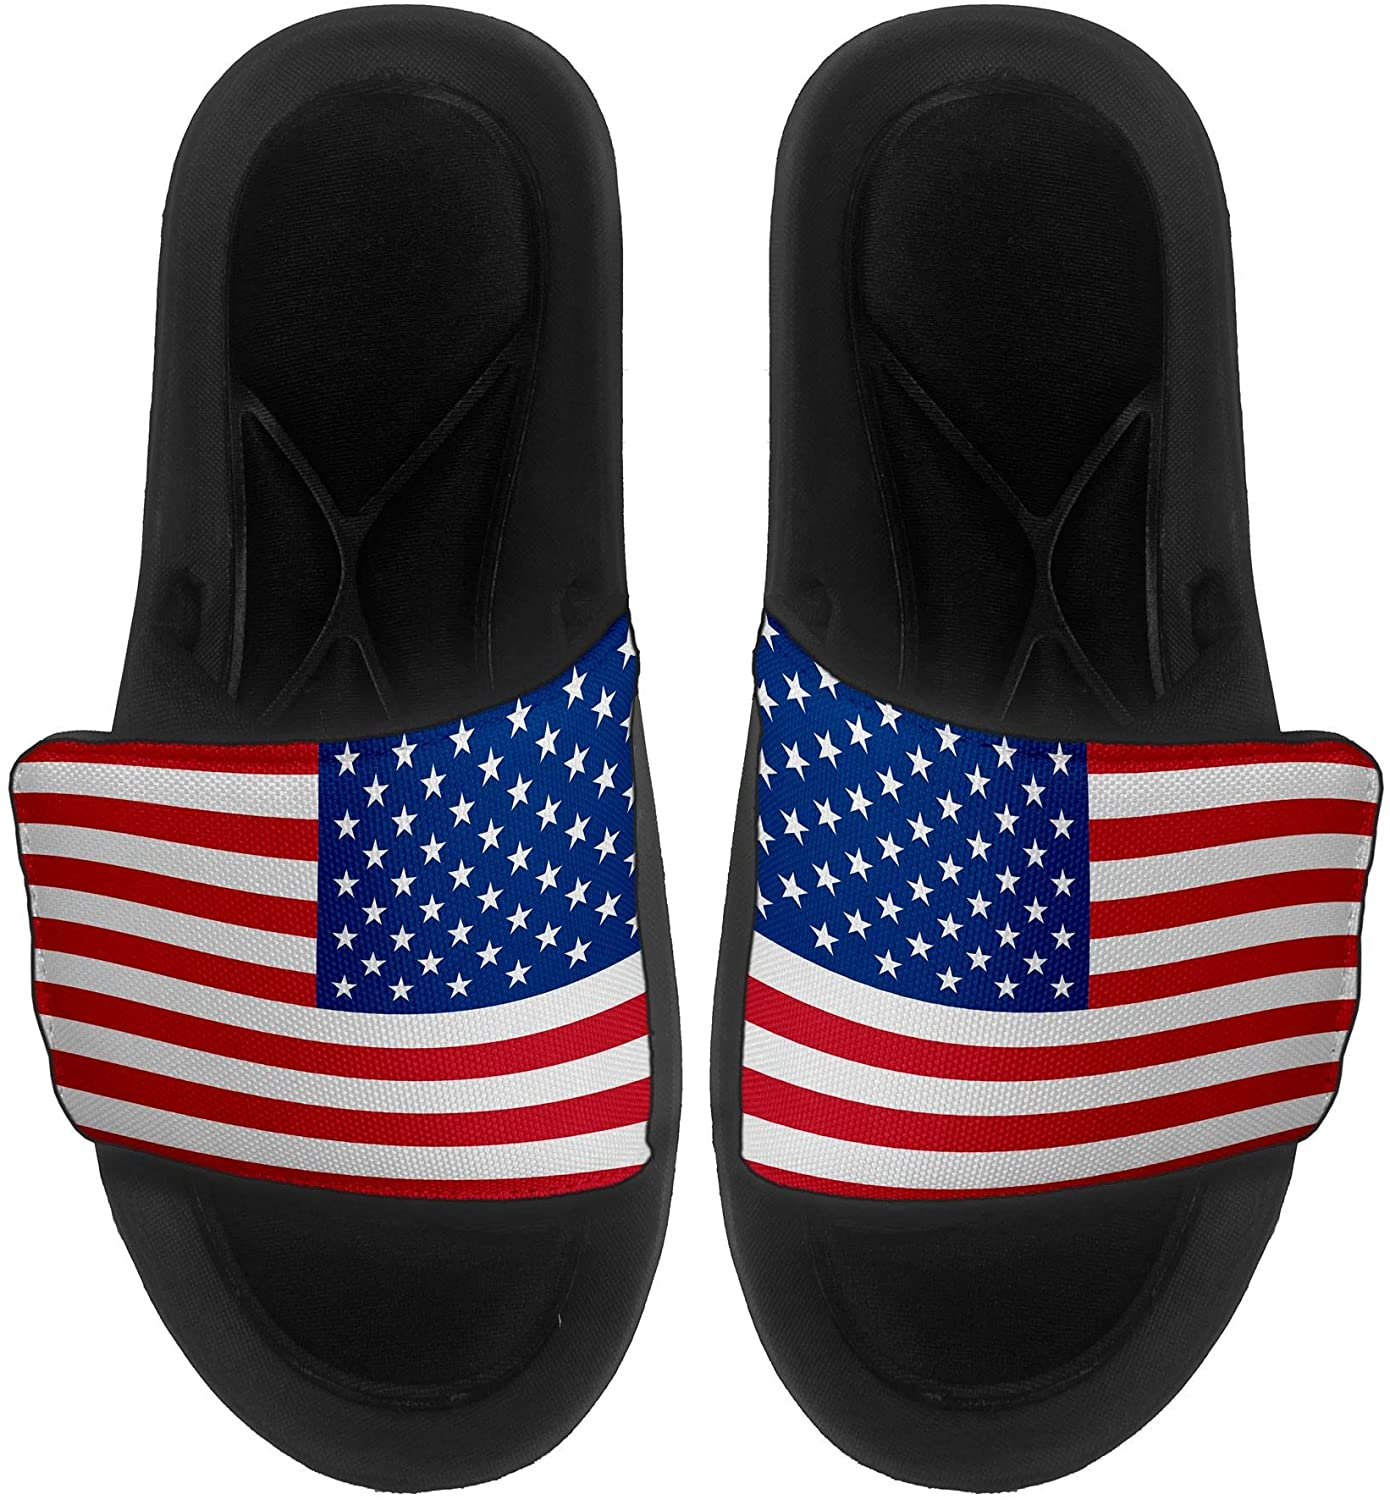 ExpressItBest Cushioned Slide-On Sandals/Slides for Men, Women and Youth - Flag of United States American USA - United States Flag